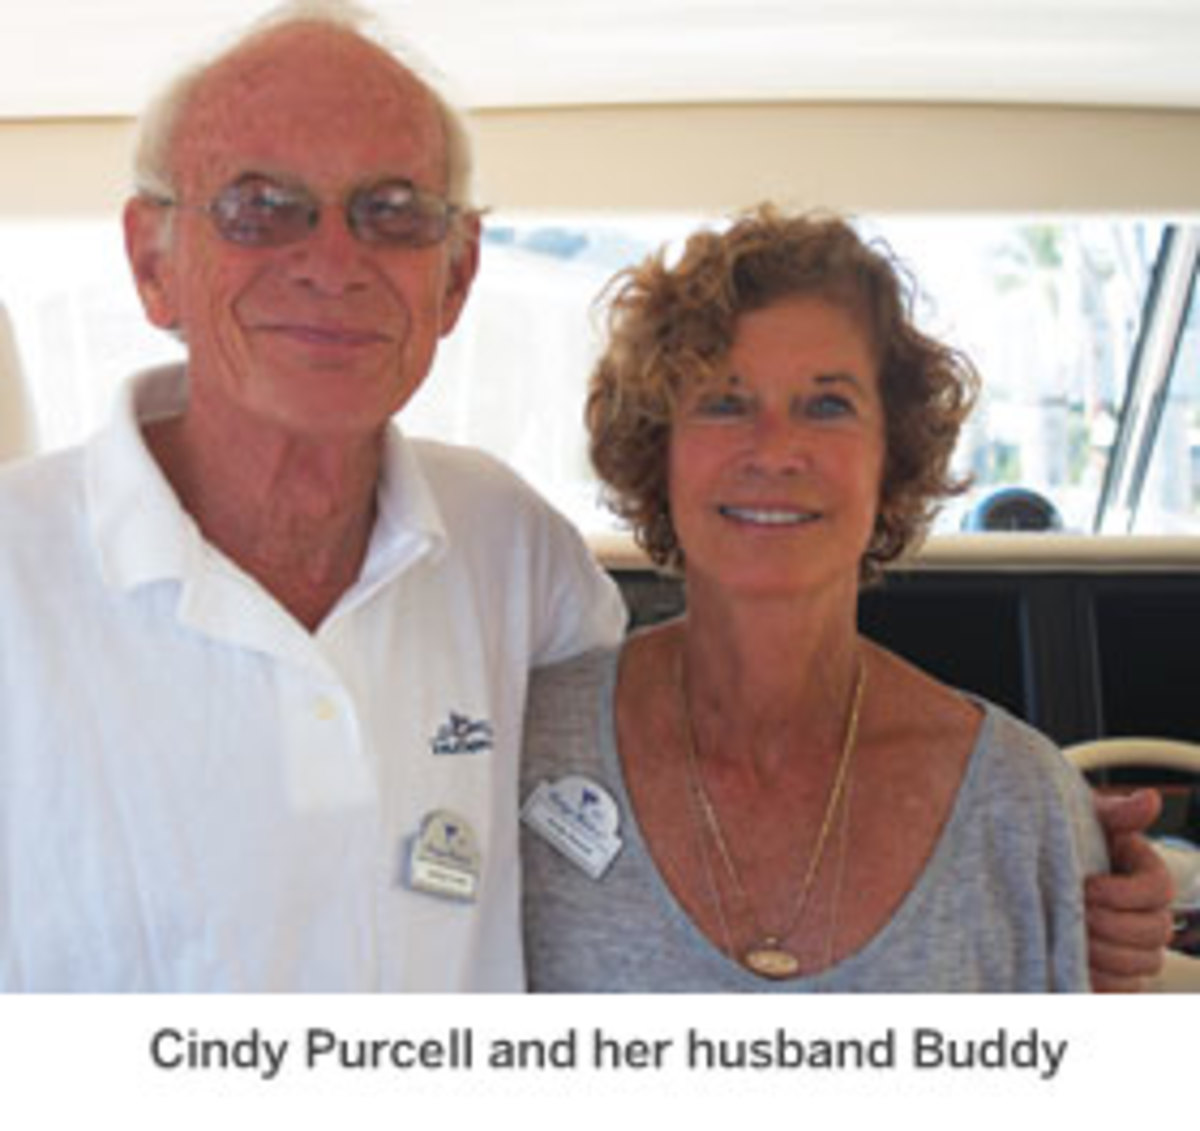 Huckins owner Cindy Purcell and her husband Buddy